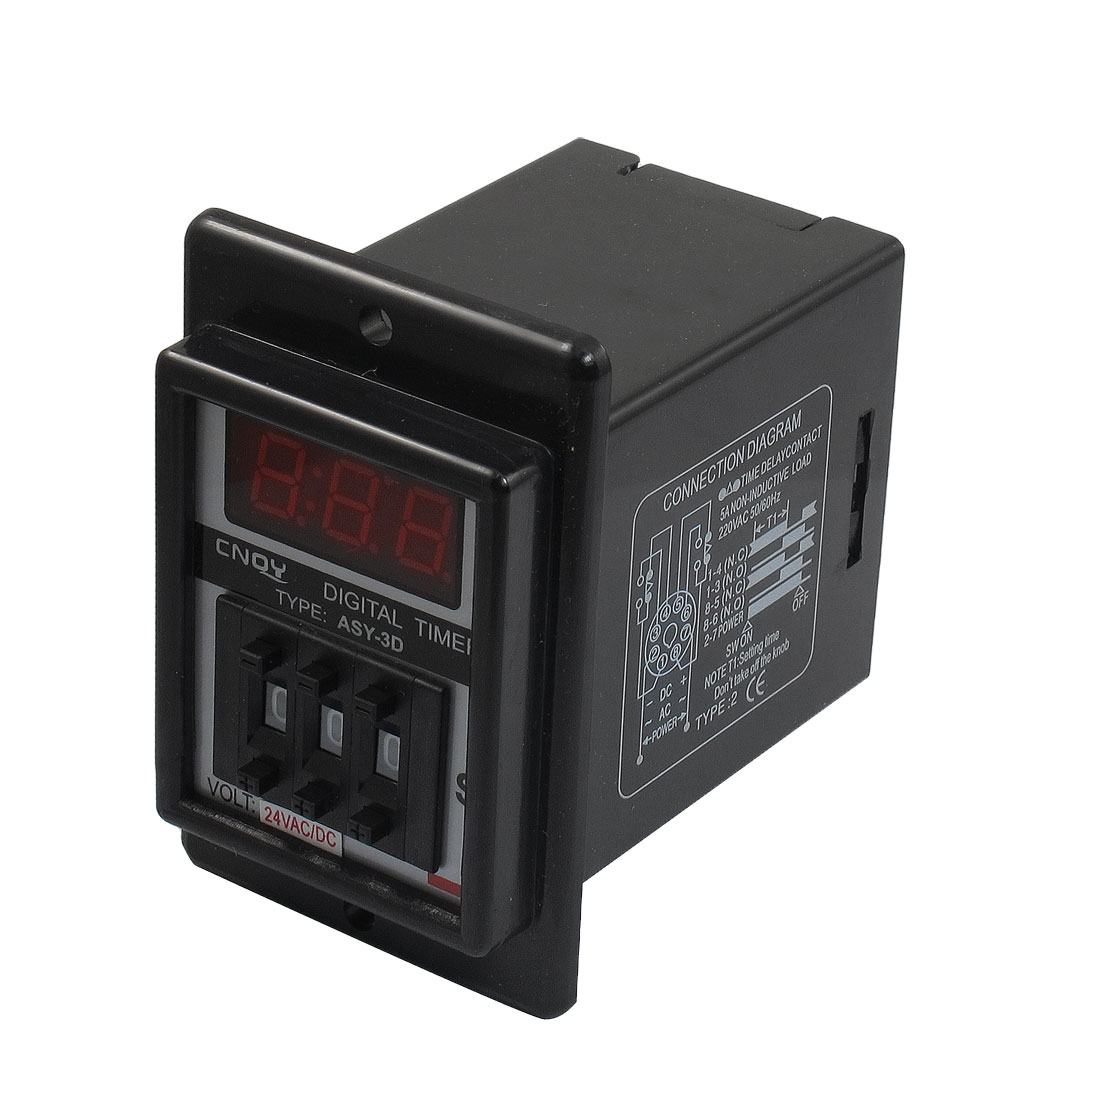 ASY-3D AC/DC 24V 9.99 Second Digital Timer Programmable Time Delay Relay Black